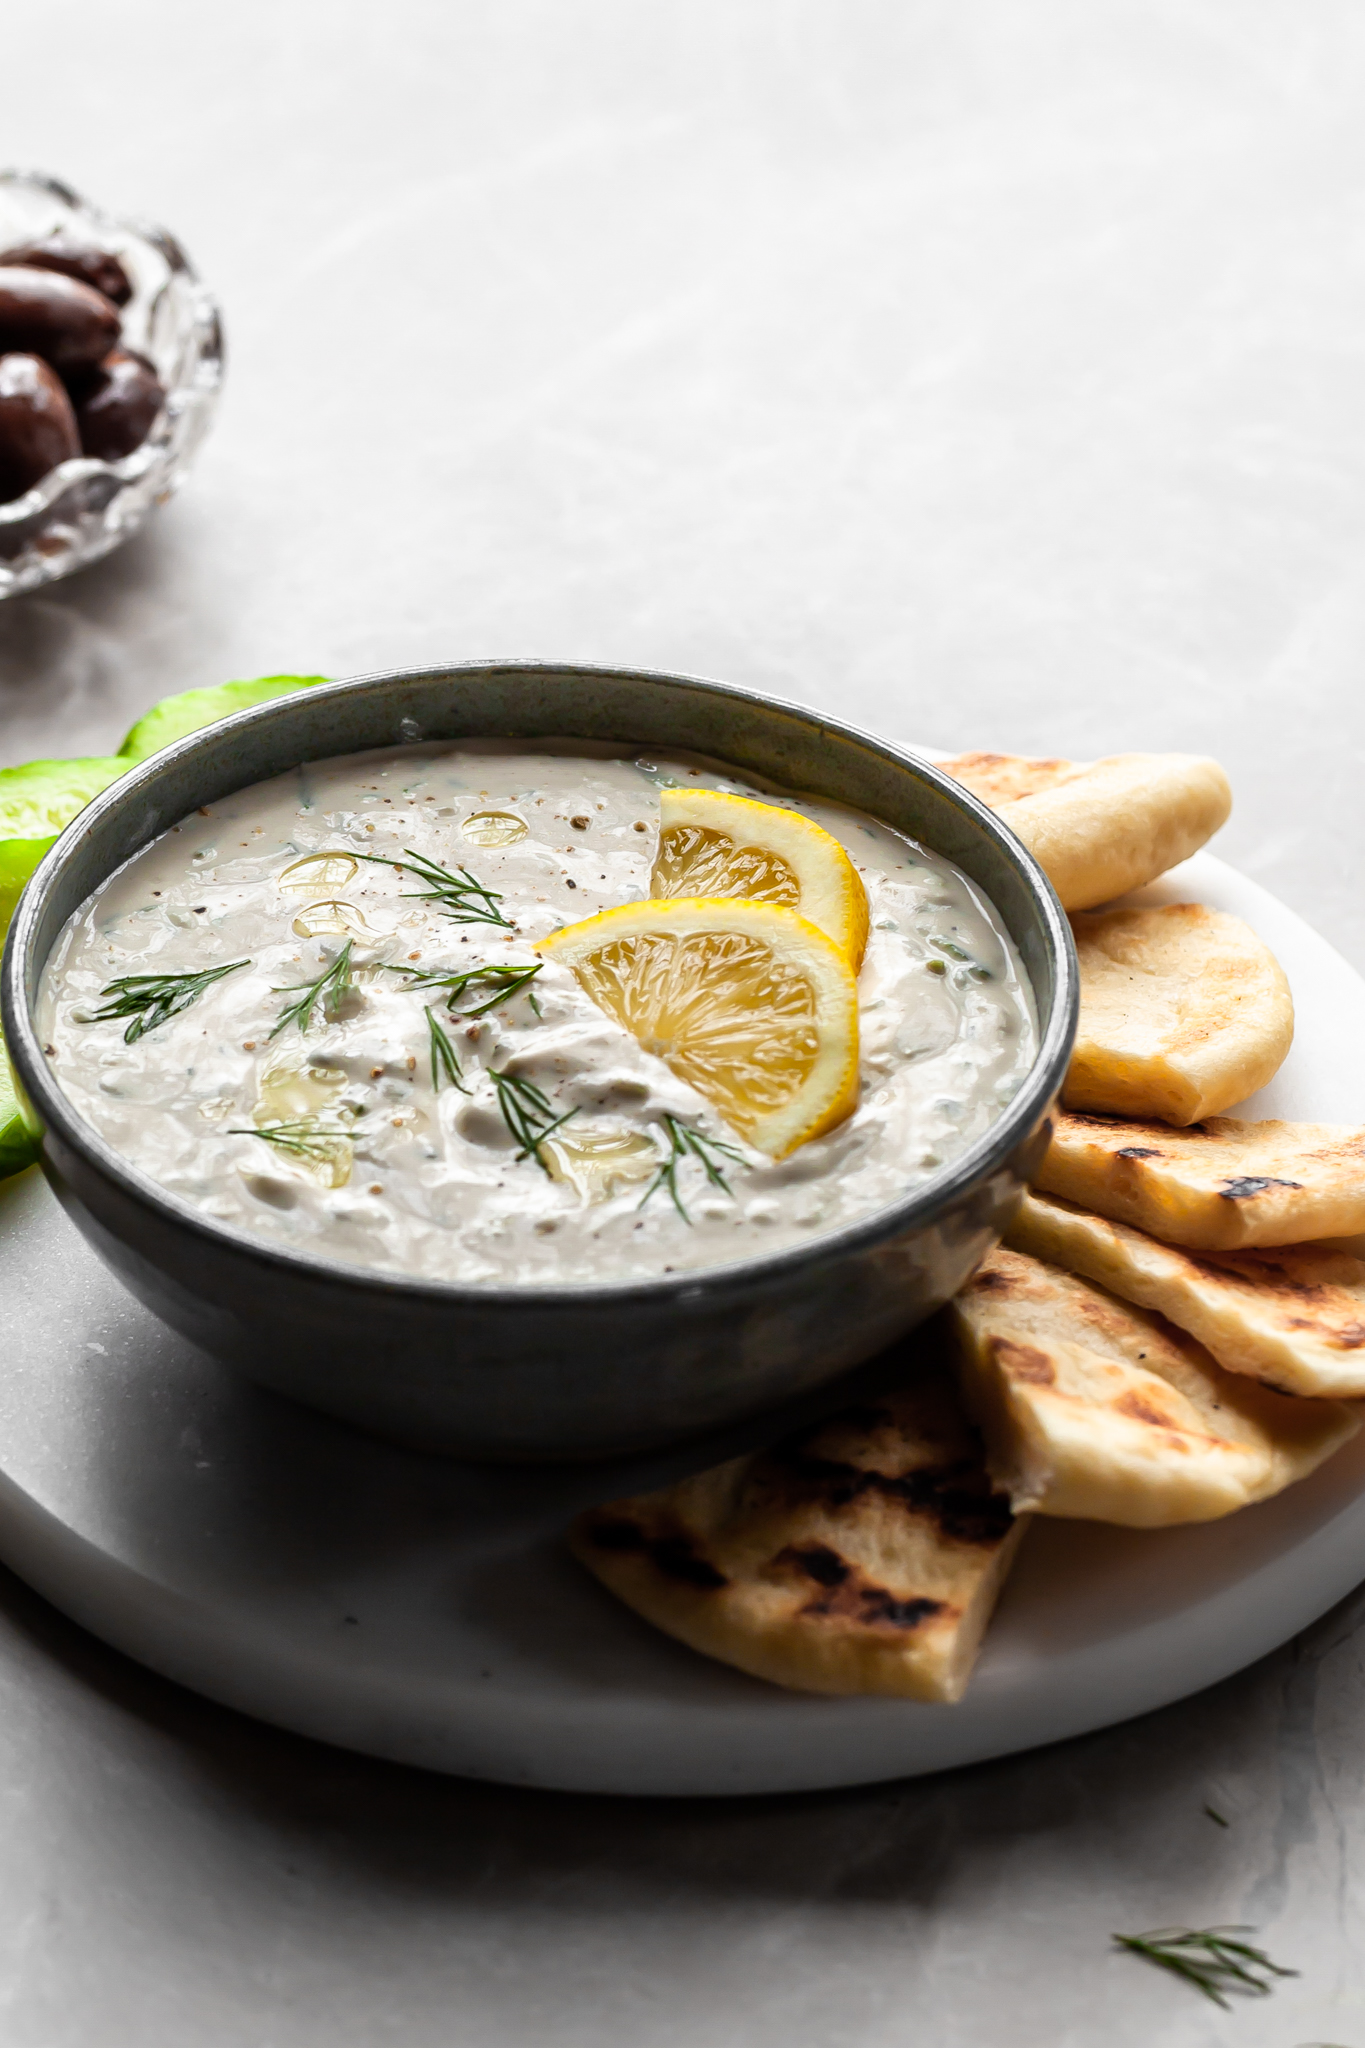 Grey bowl of tzatziki sauce garnished with lemon wedges, served with greek flatbread and slices of cucumber